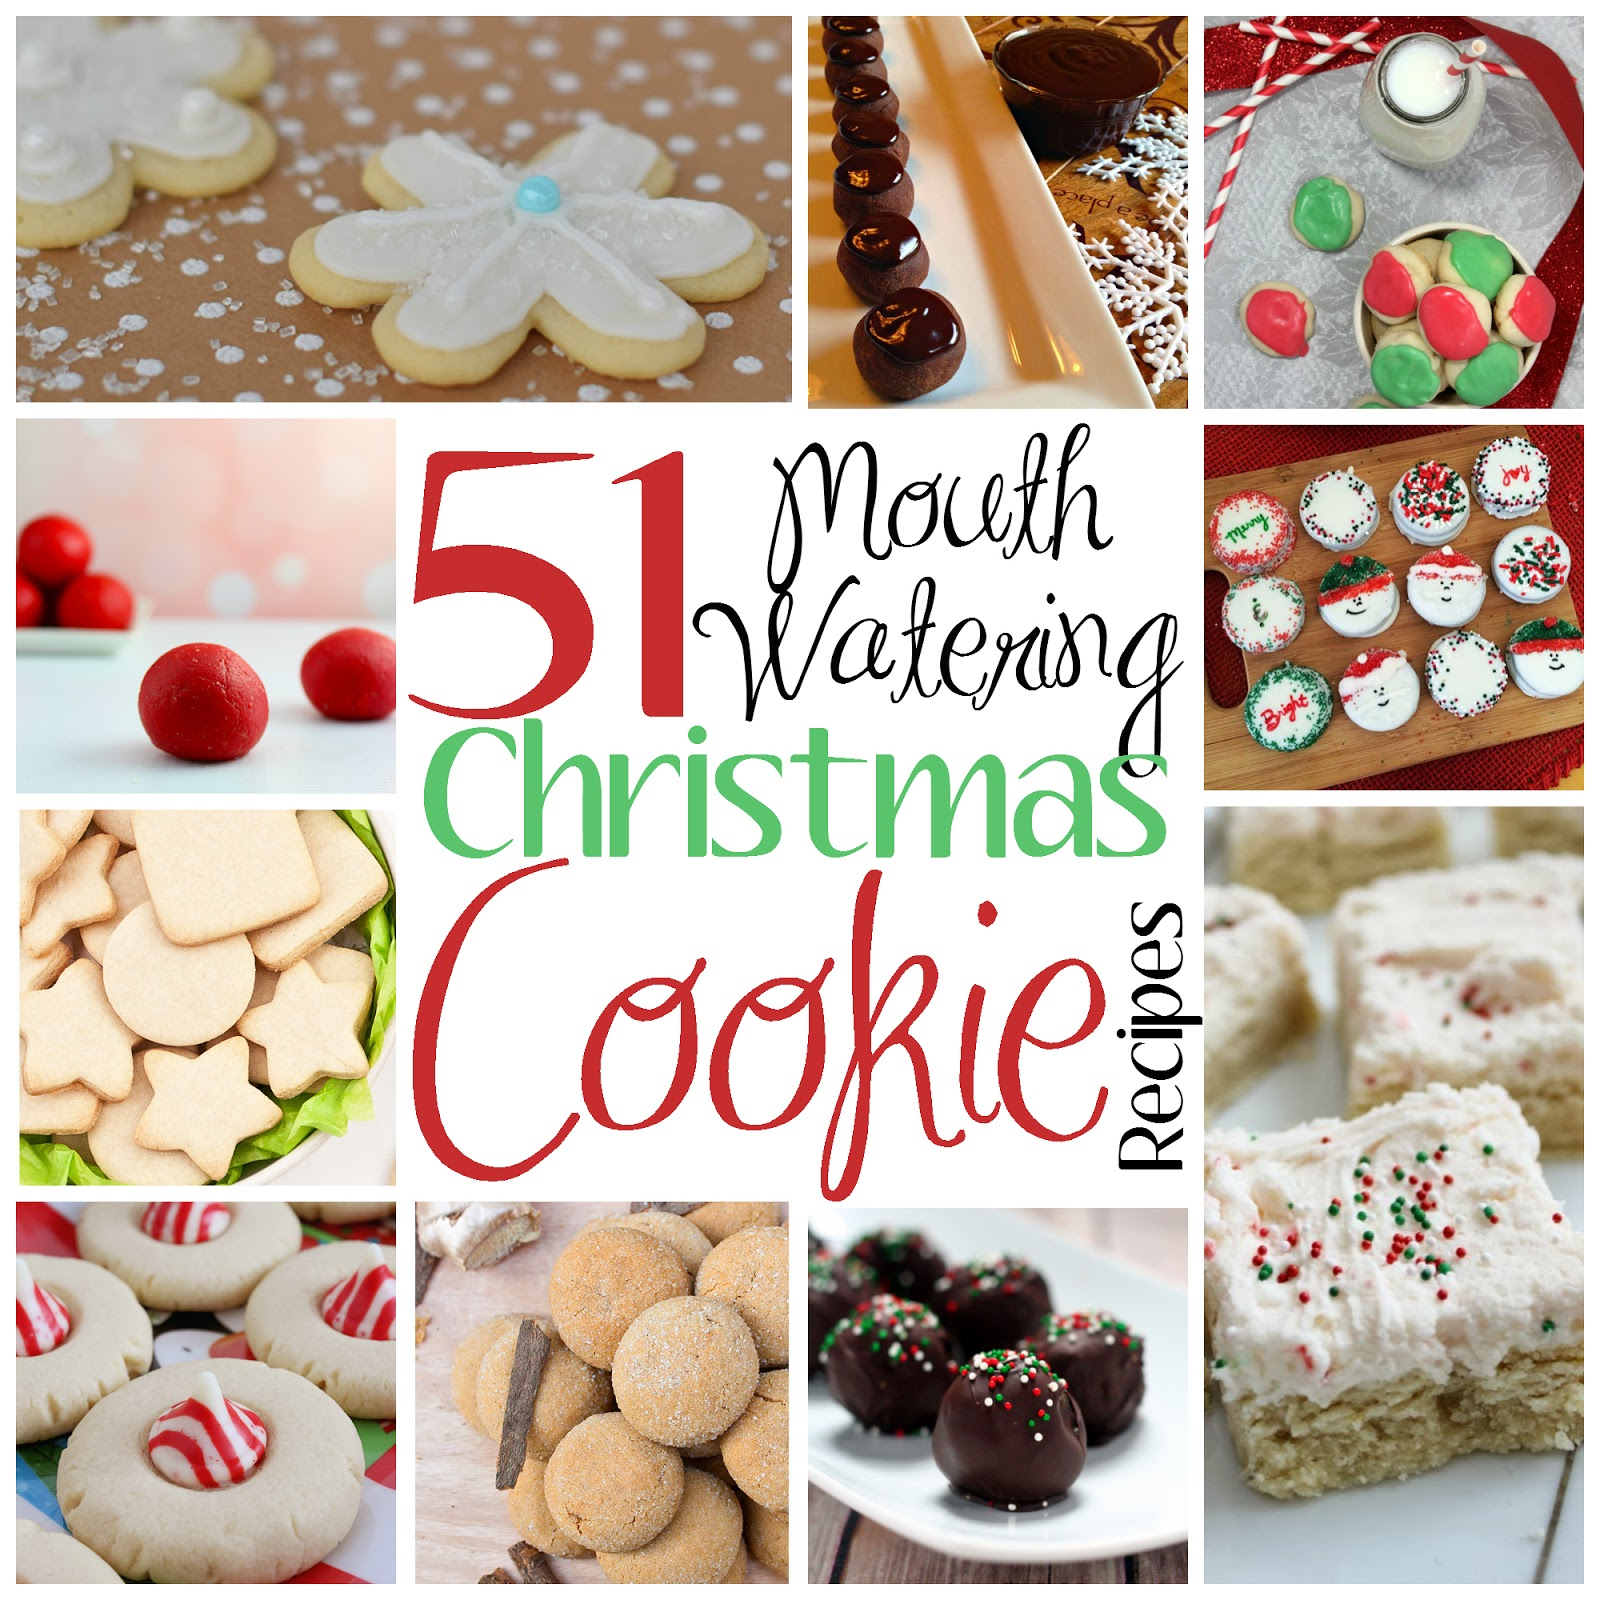 51 Mouth Watering Christmas Cookie Recipes Part 1 Mom Needs Chocolate